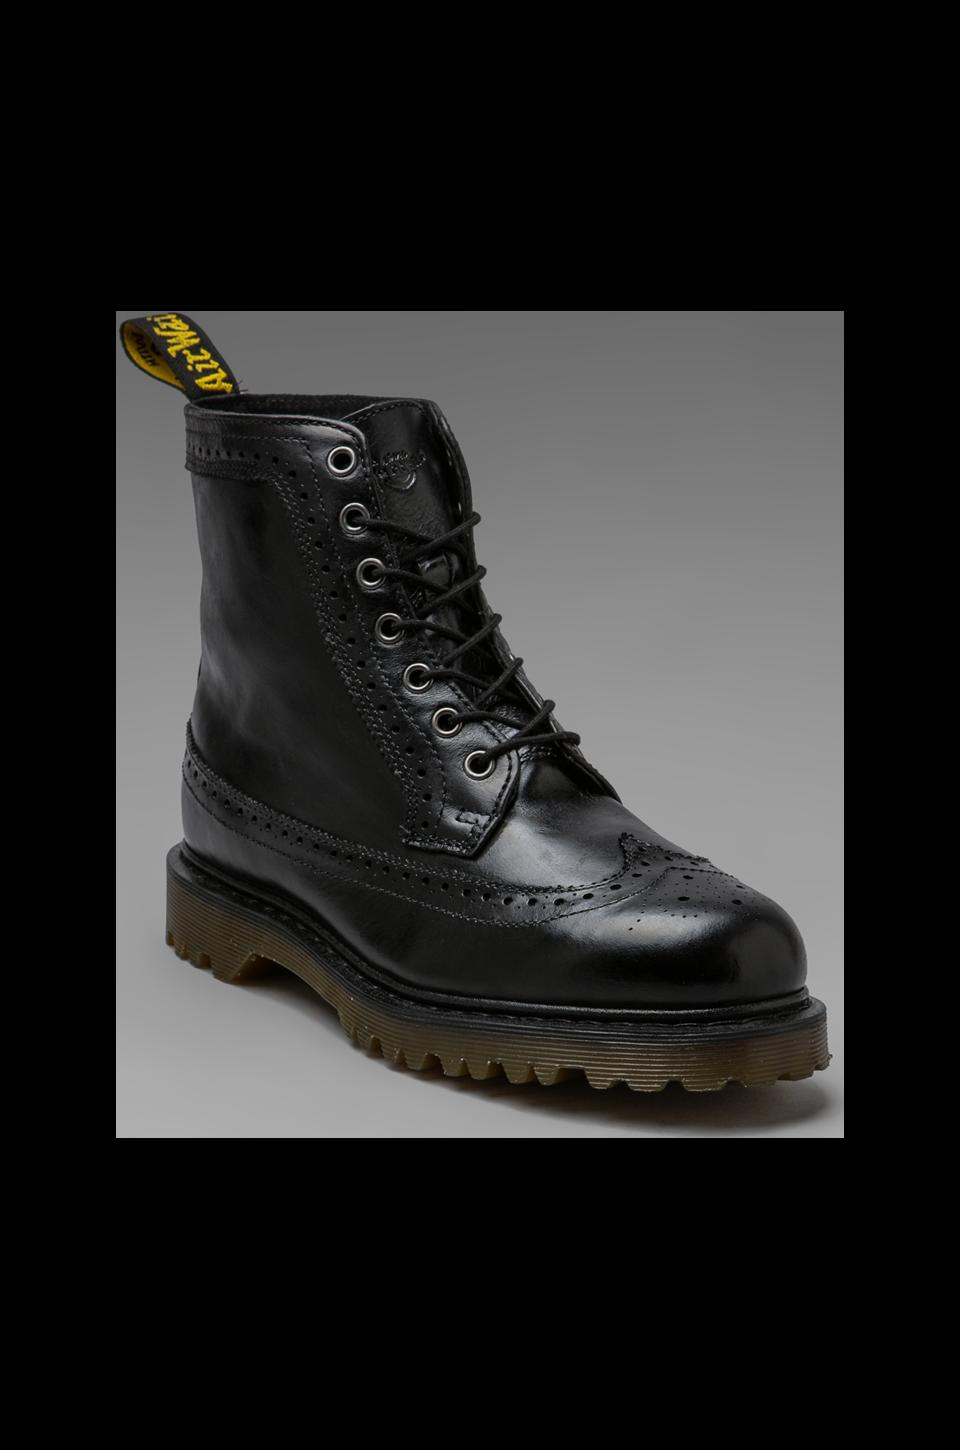 Dr. Martens Fitzroy 7 Eye Brogue Boot in Black